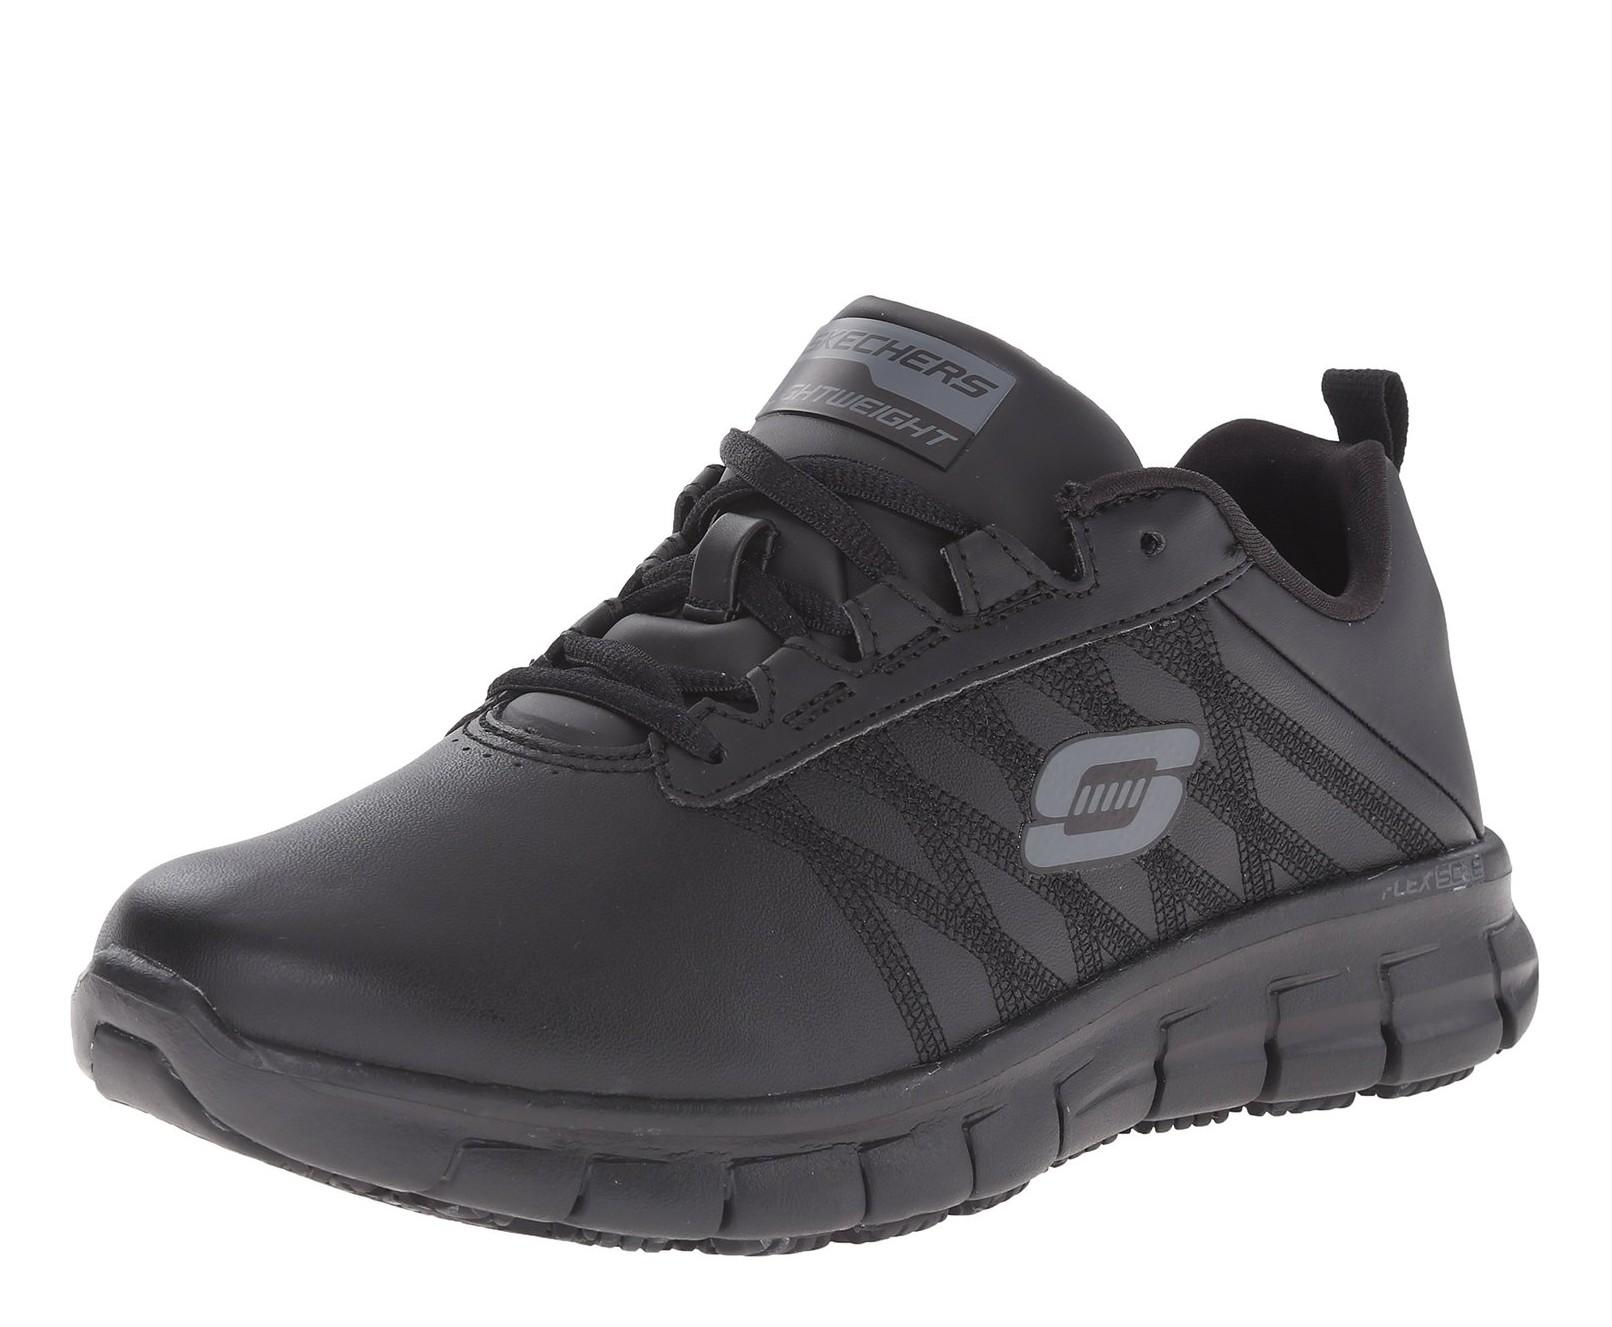 Sketchers Work Shoes For Men Best Rated